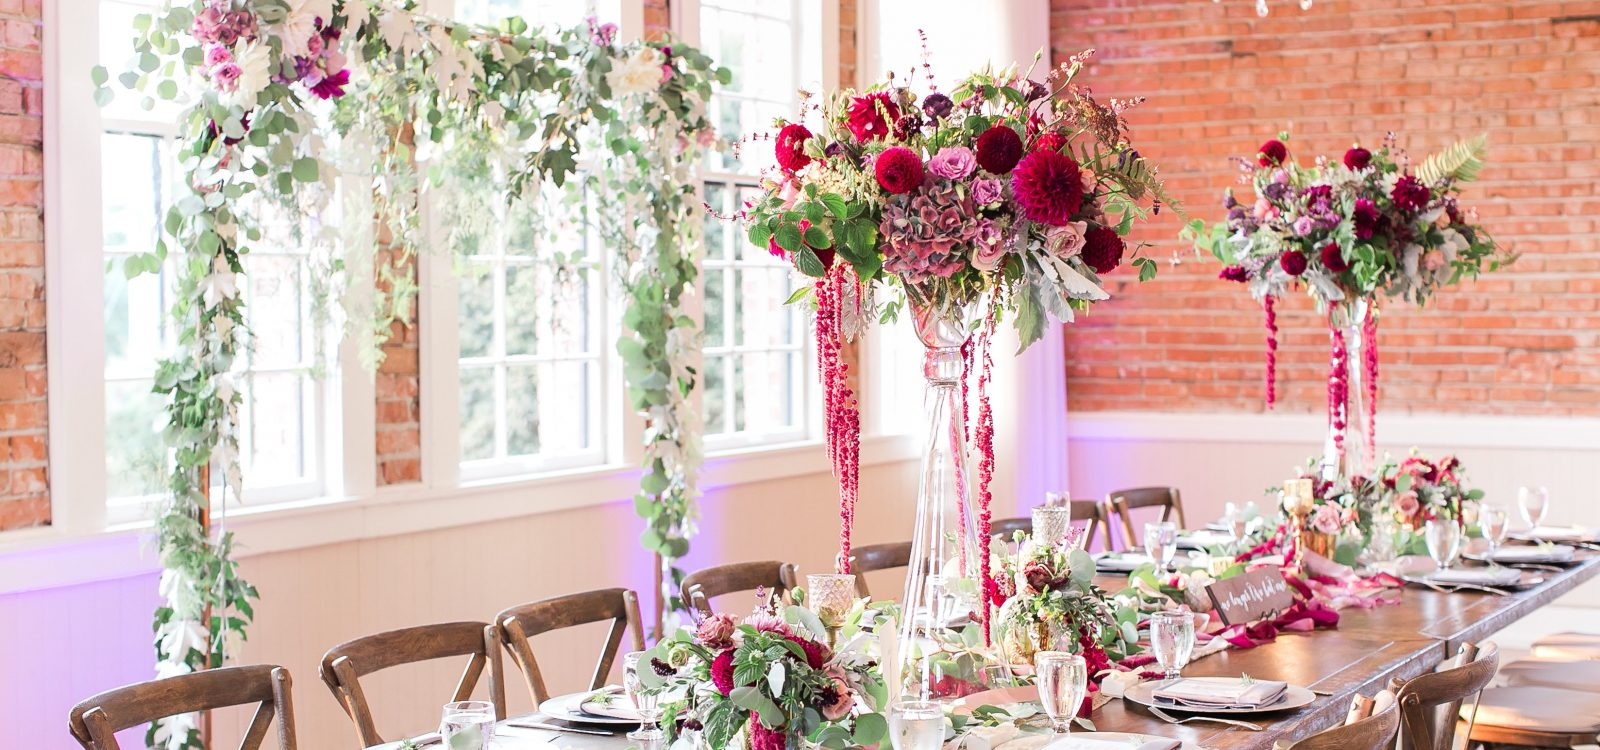 Hollywood Schoolhouse Woodinville wedding flowers by Tobey Nelson Events image by Lloyd Photography (1)